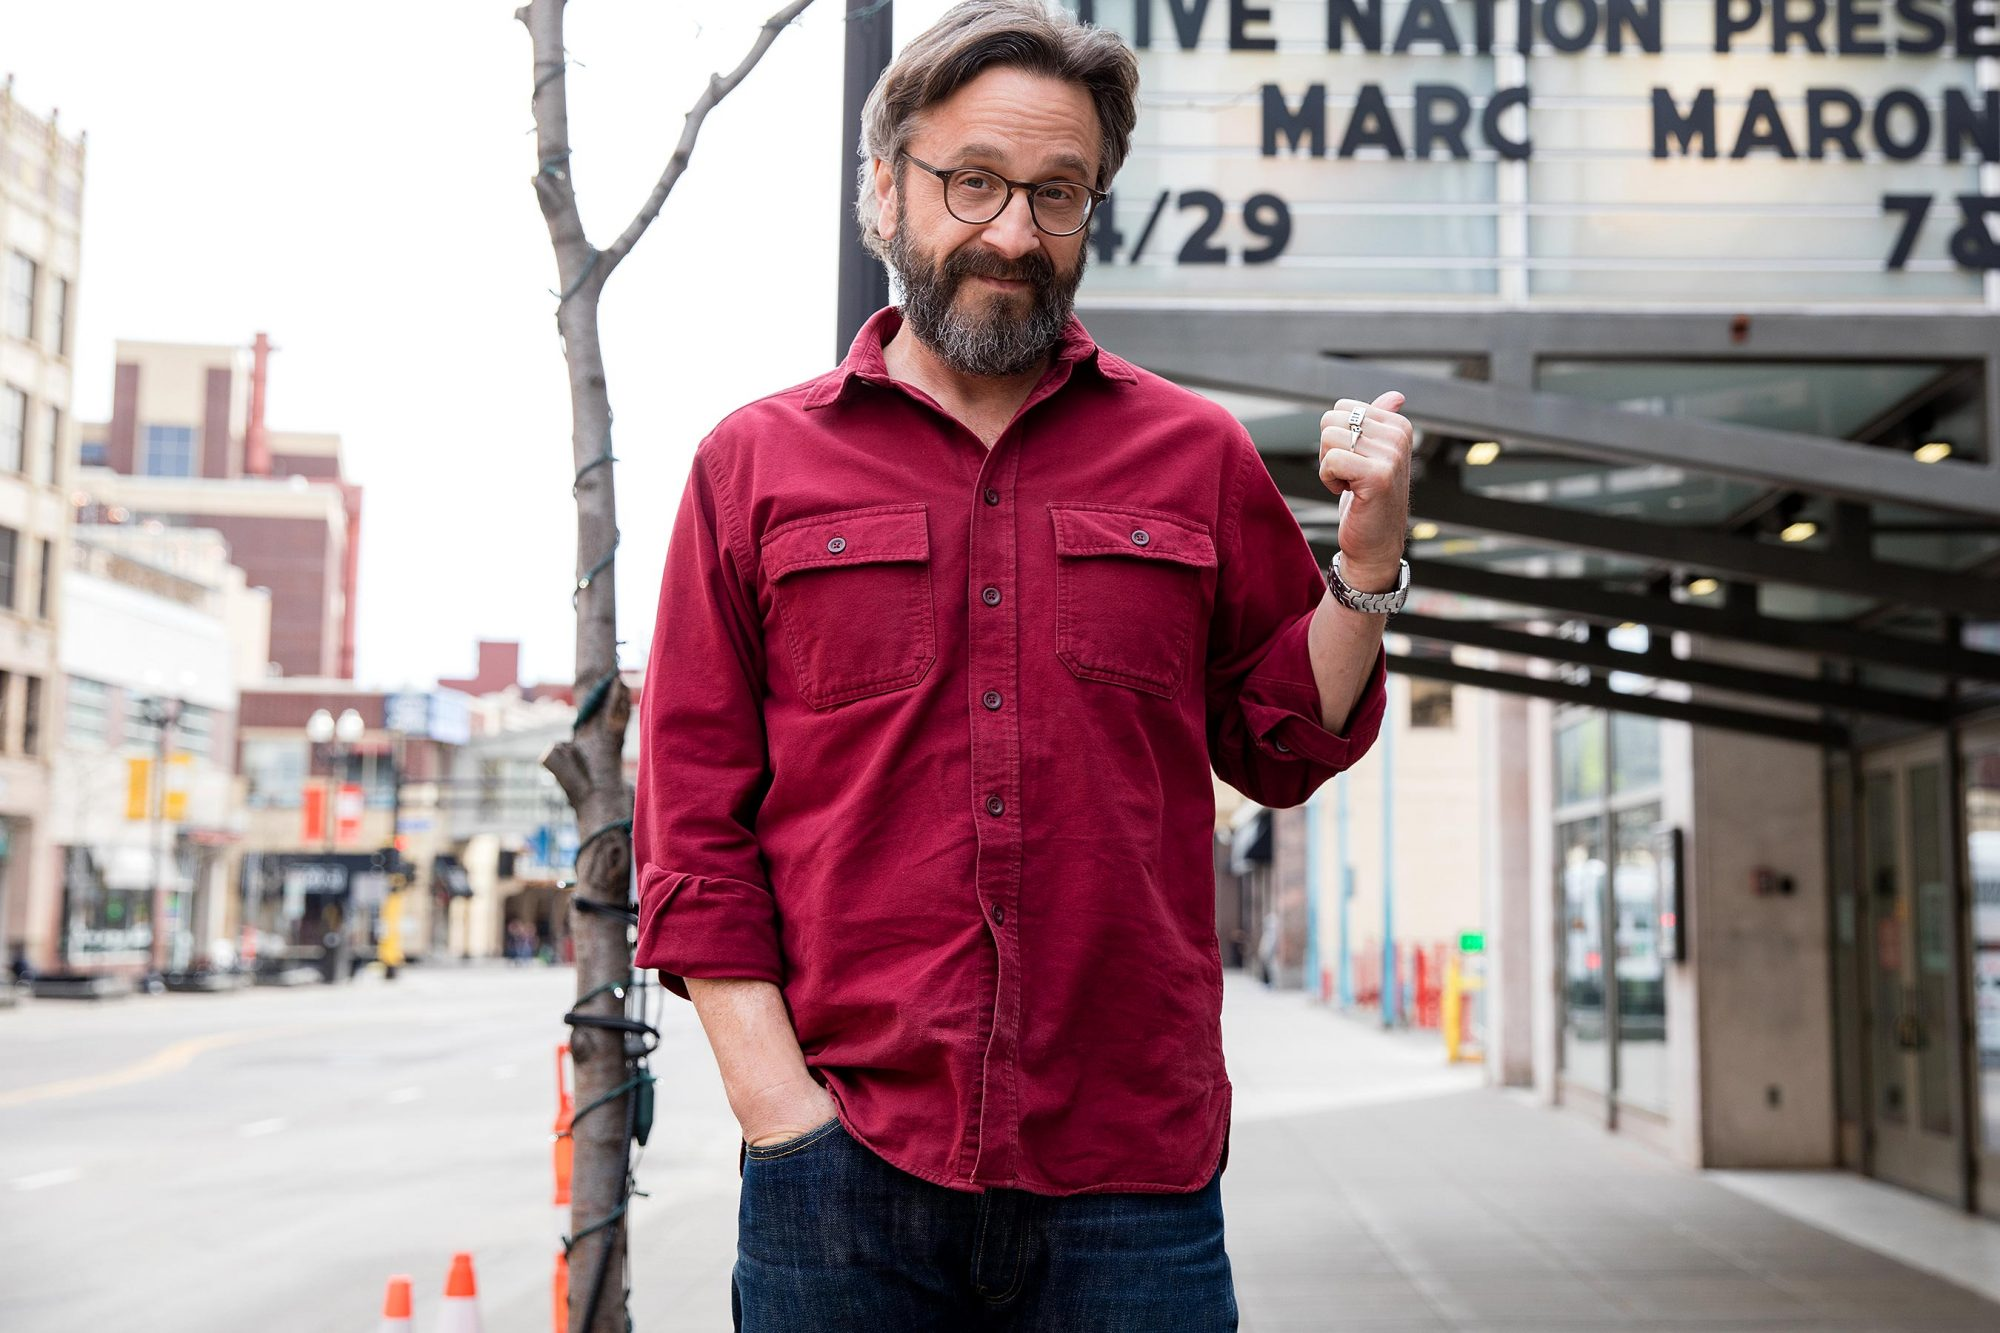 Marc Maron - Minneapolis, Minnesota